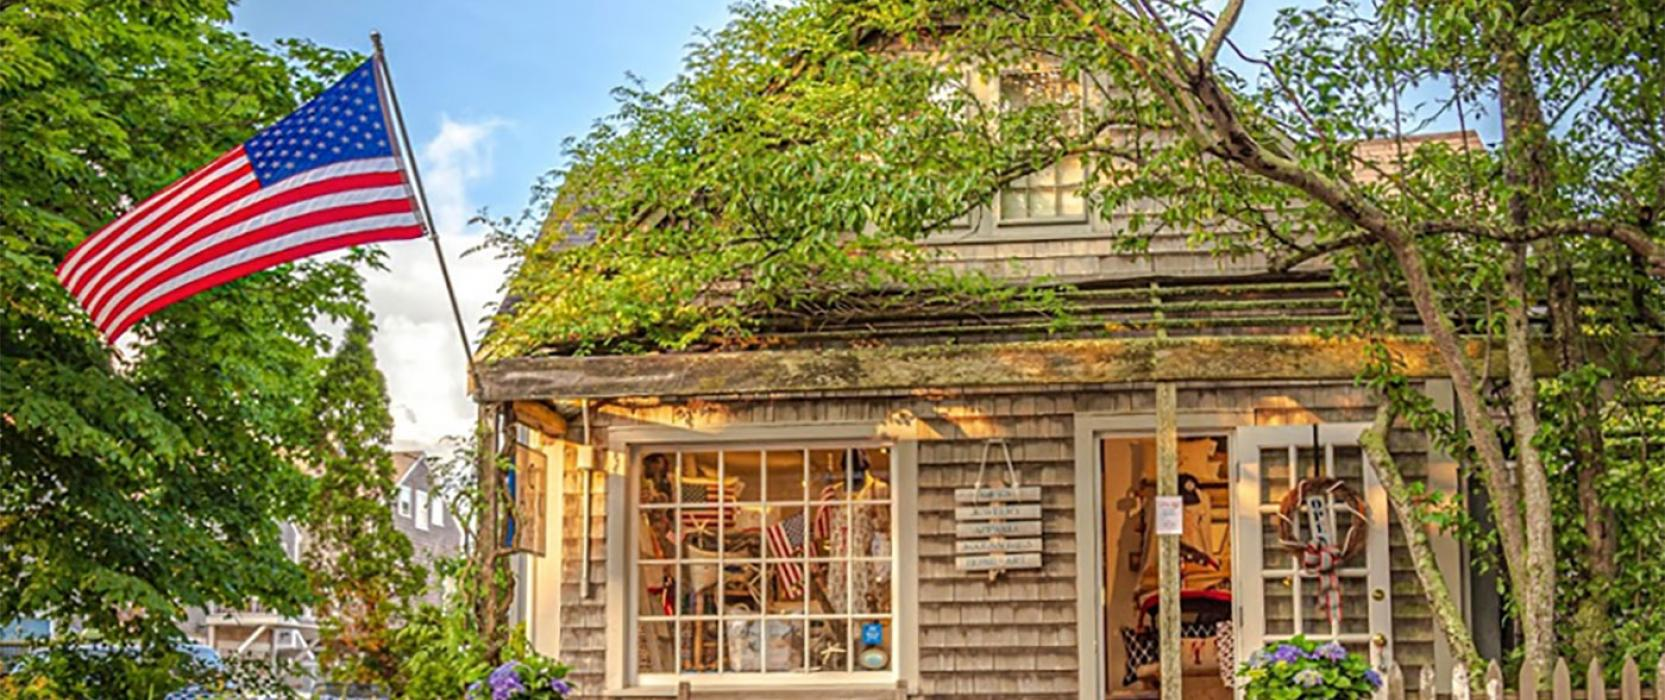 ACK 4170 Nantucket Shop